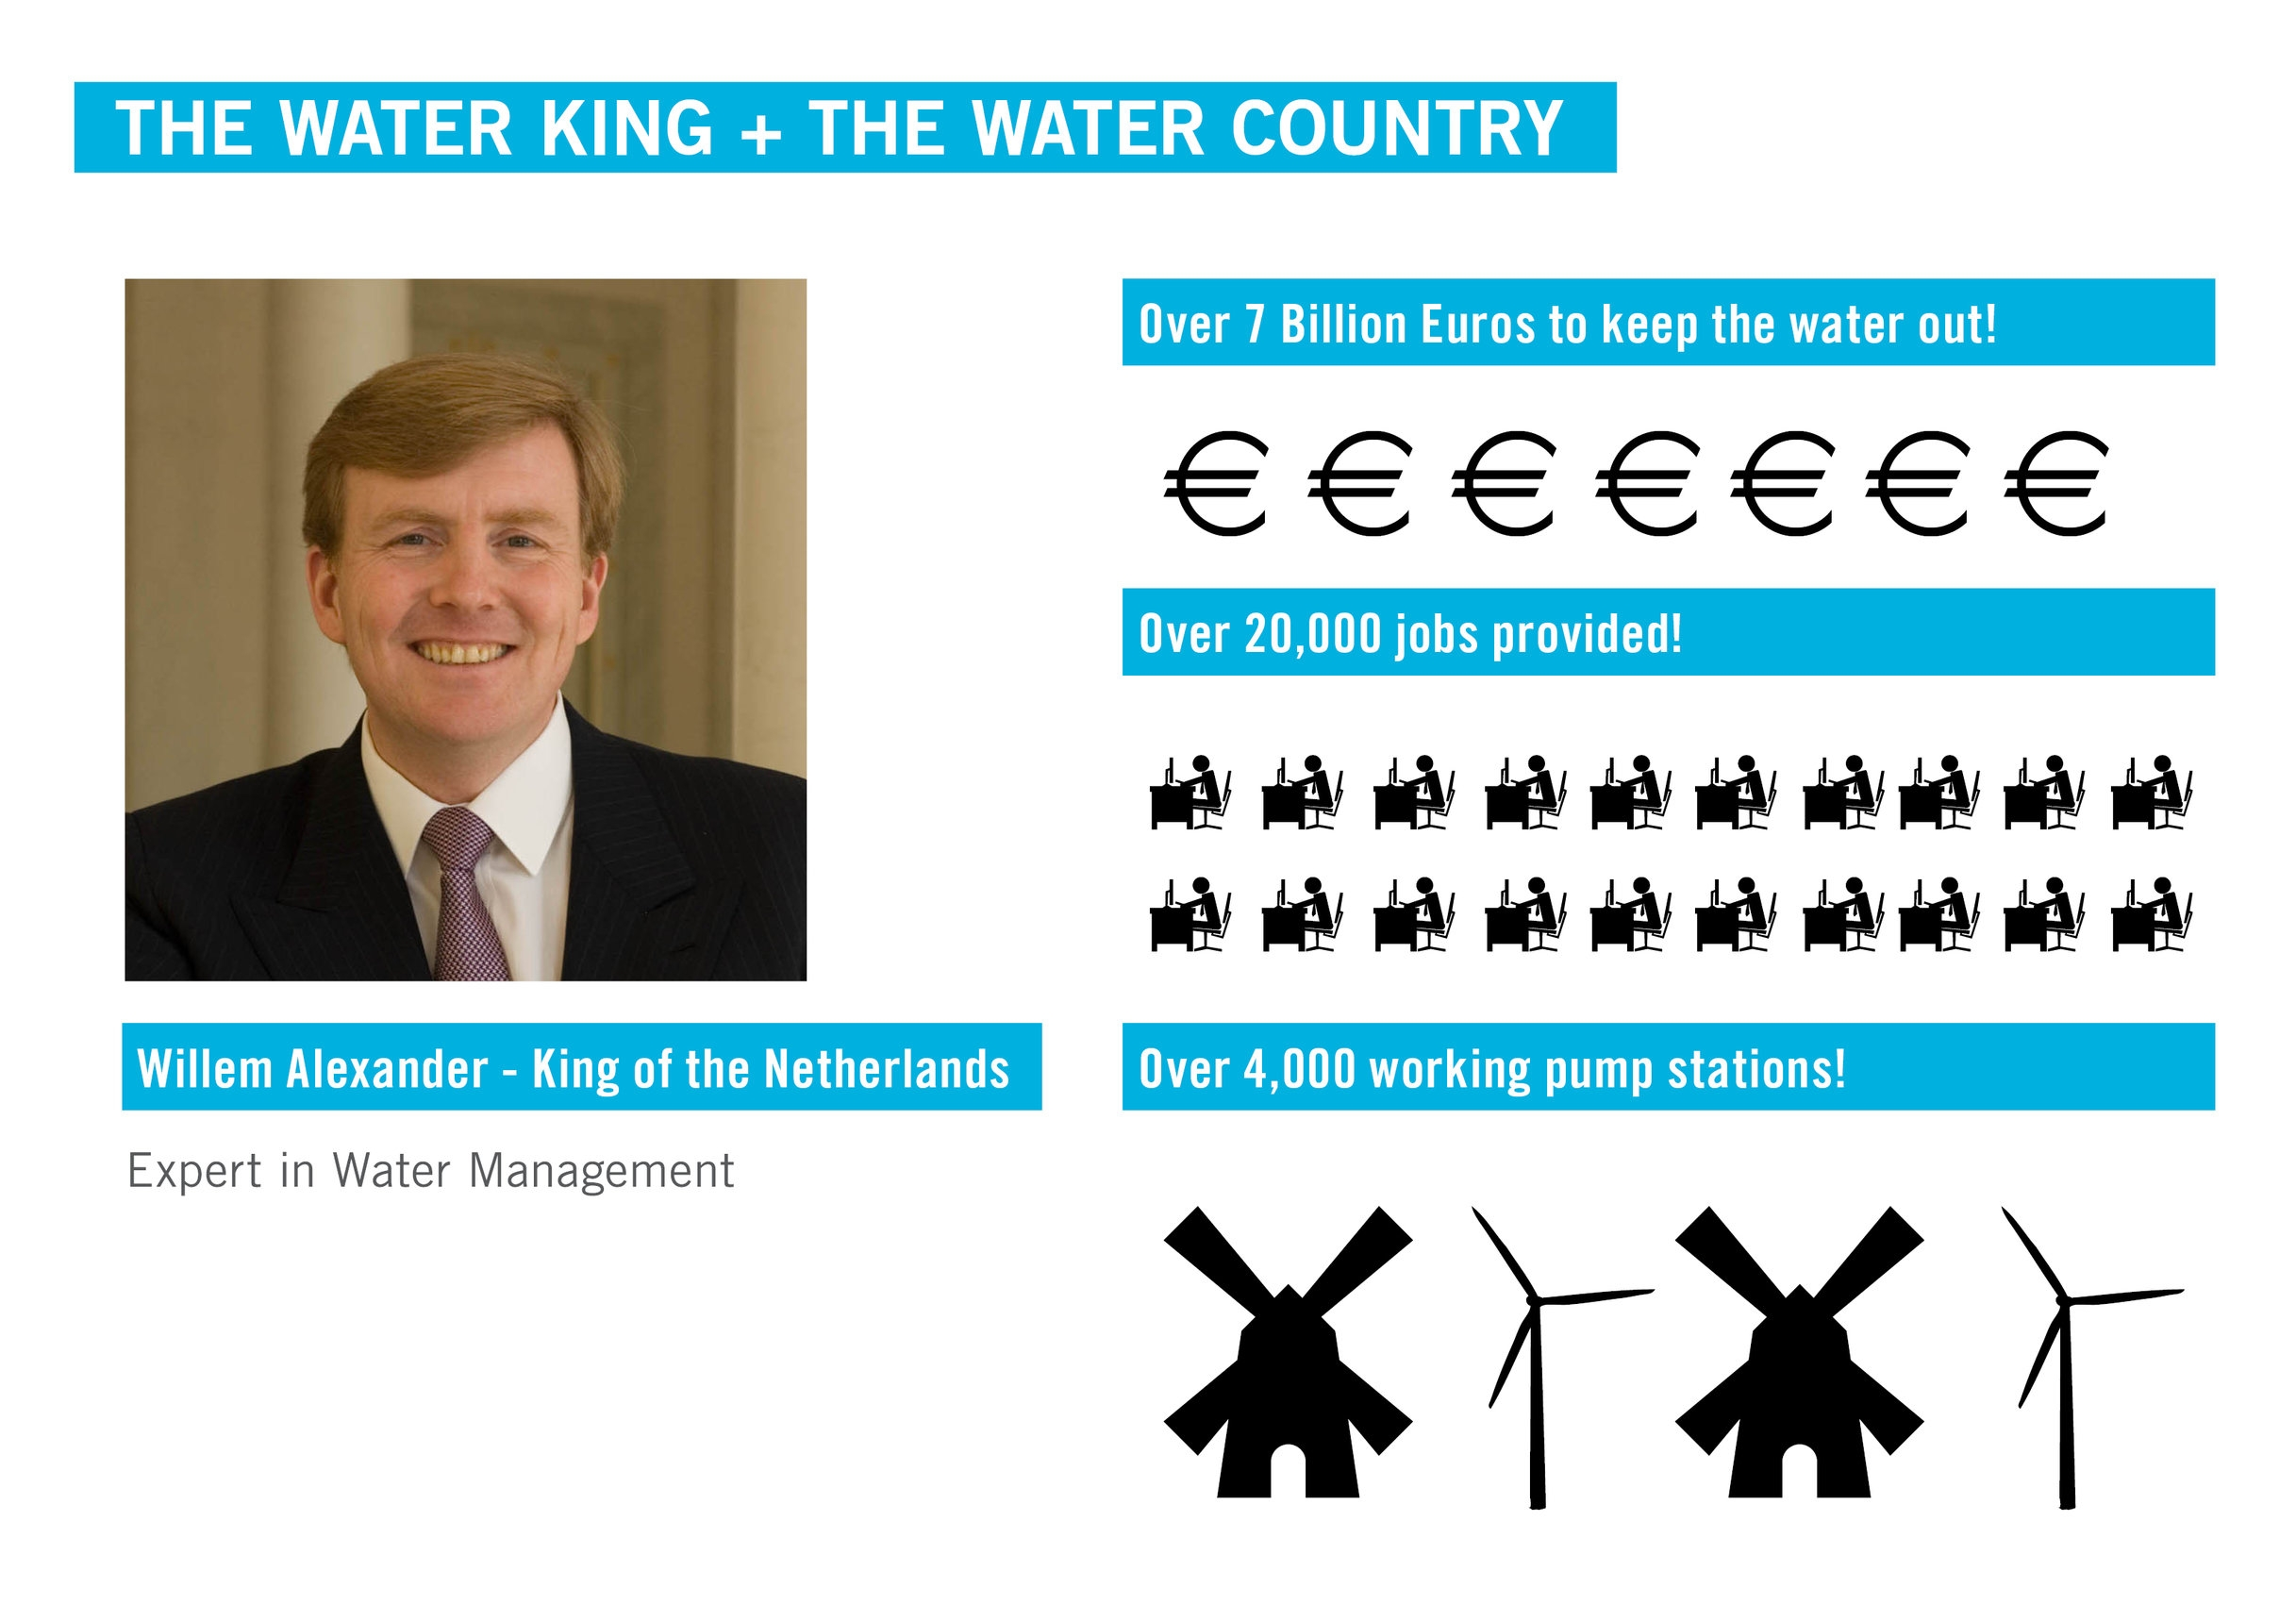 King Willem Alexander and Water Management of the Netherlands: graphics by Arlen Stawasz, stock photo taken from Google